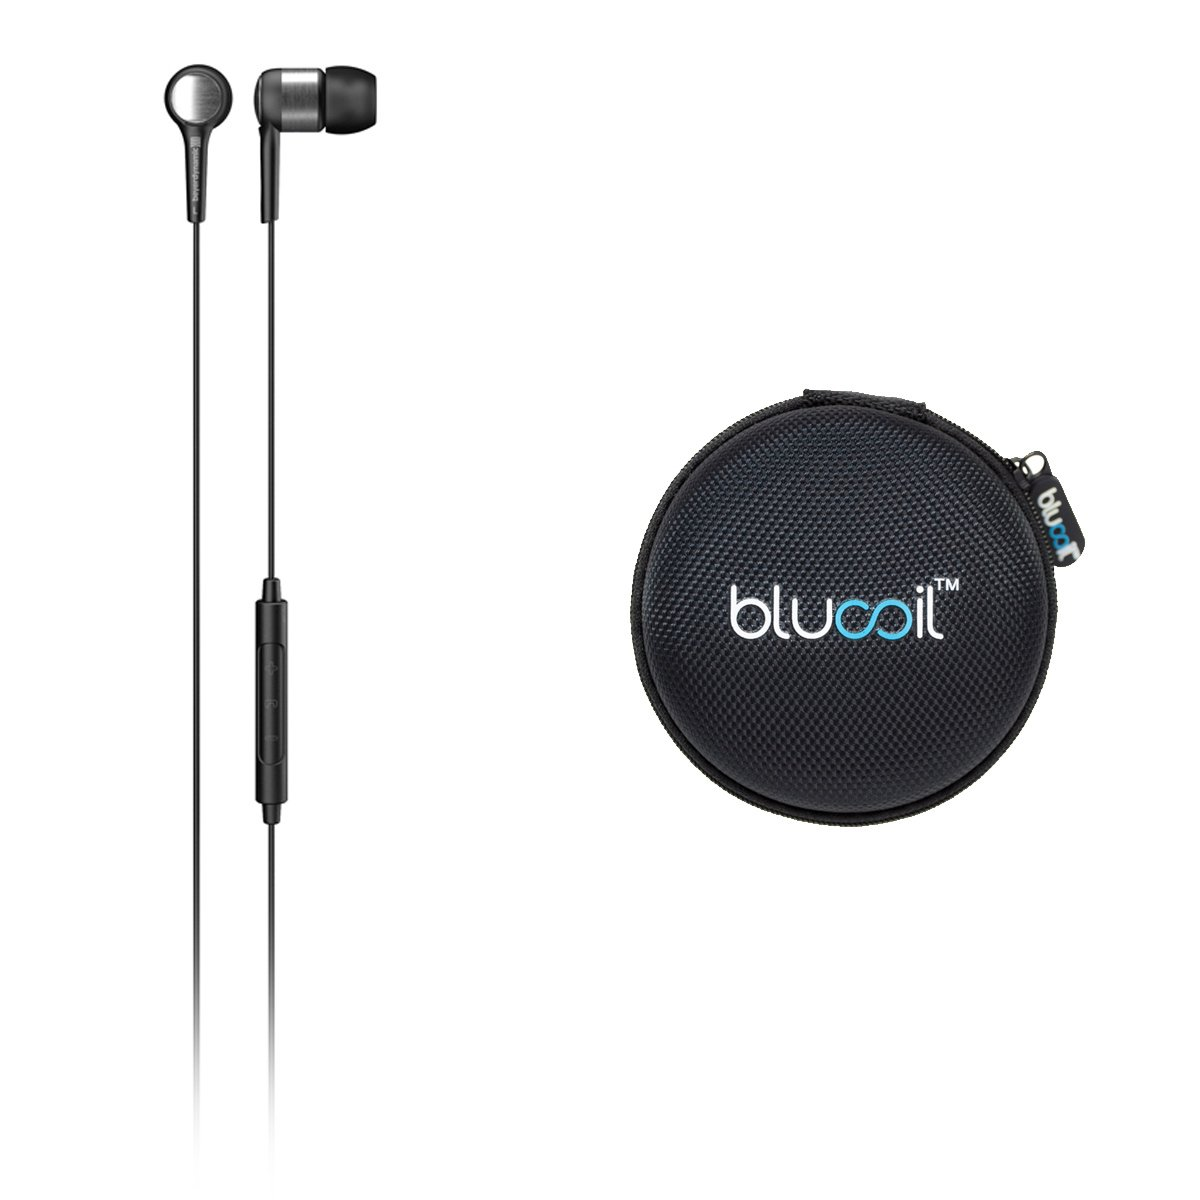 Beyerdynamic BYRON Wired In-Ear Headphones with Mic/Volume Control -INCLUDES- Blucoil Portable Earphones Hard Case